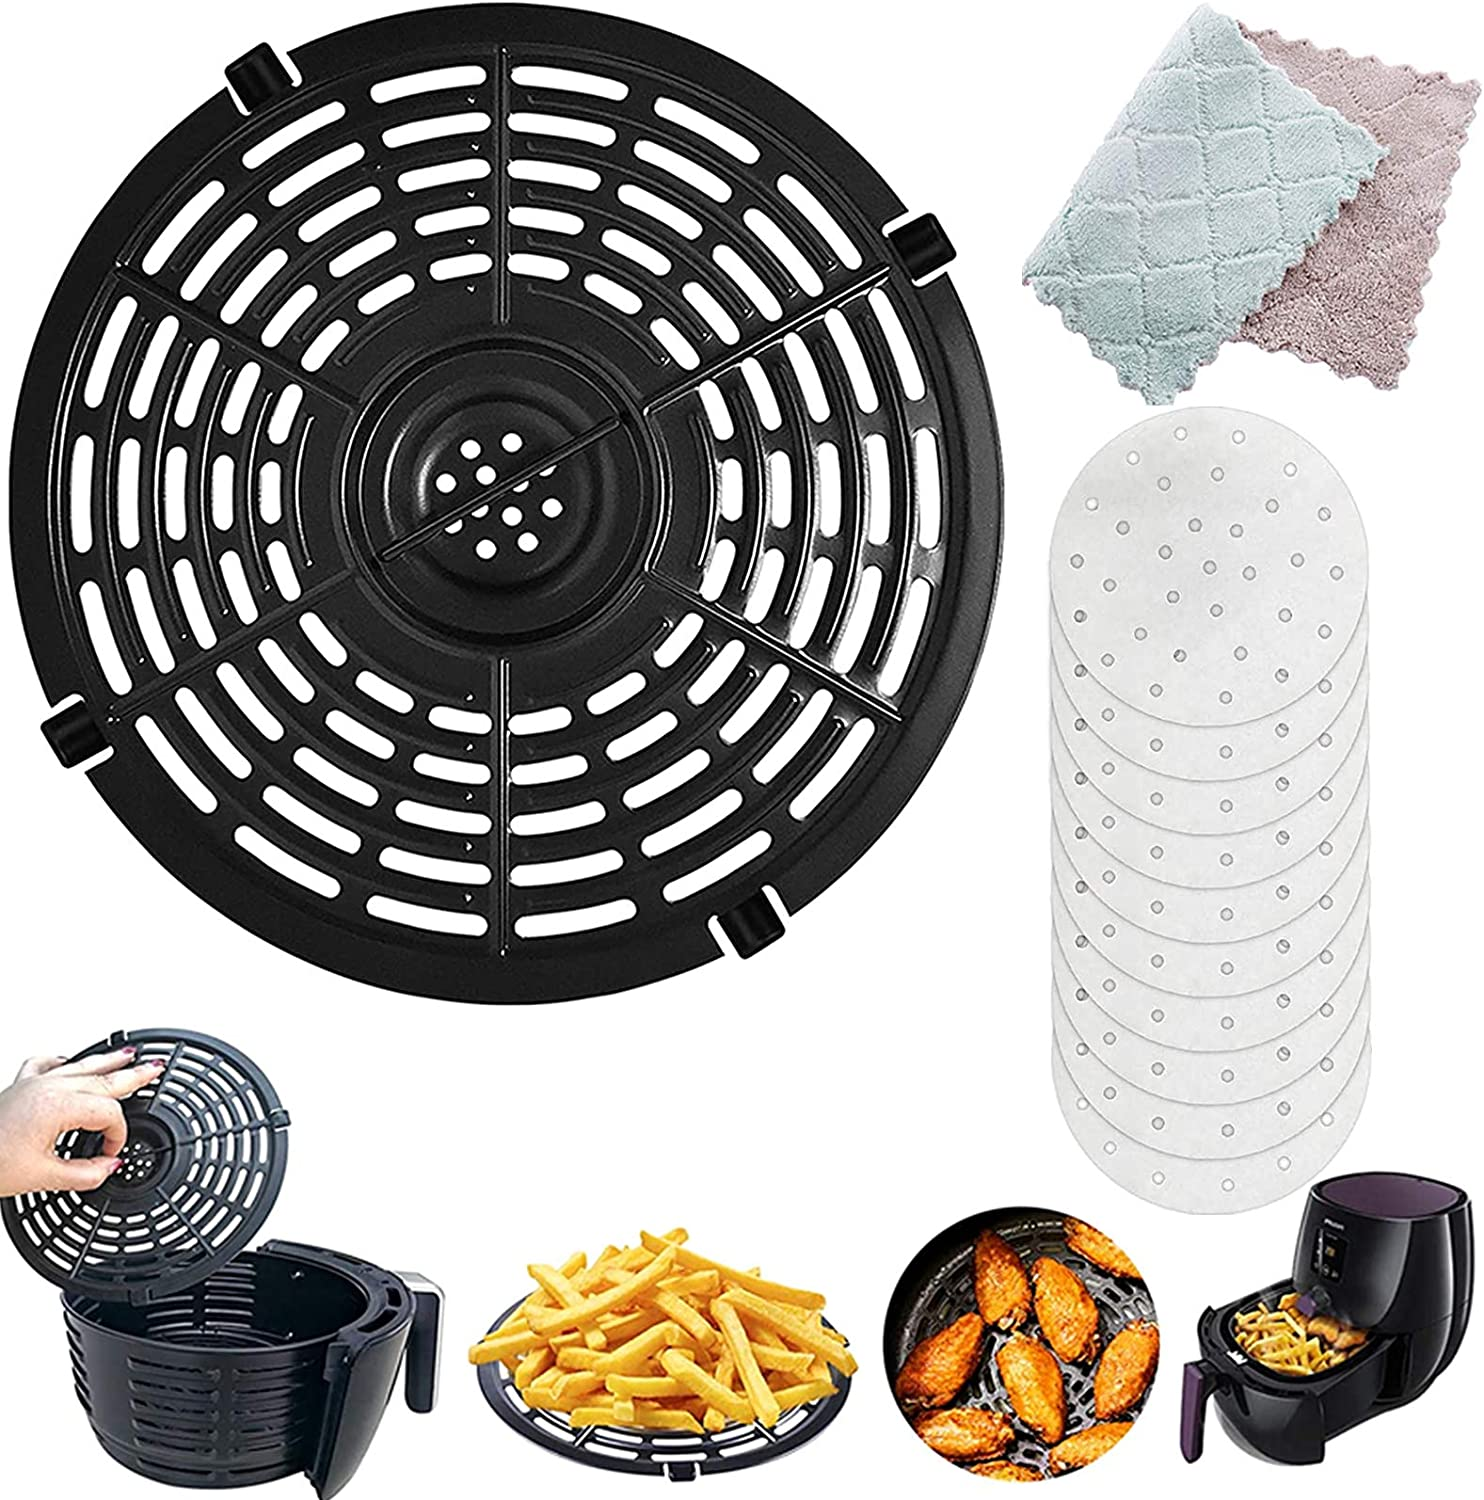 Air Fryer Replacement Grill Pan,Premium Non-Stick Round Crisper Plate for Make French Fries, Pizza, Chicken Wings and so on,Dishwasher Safe (Free cleaning cloth.Oil brush and filter paper) (166) ????